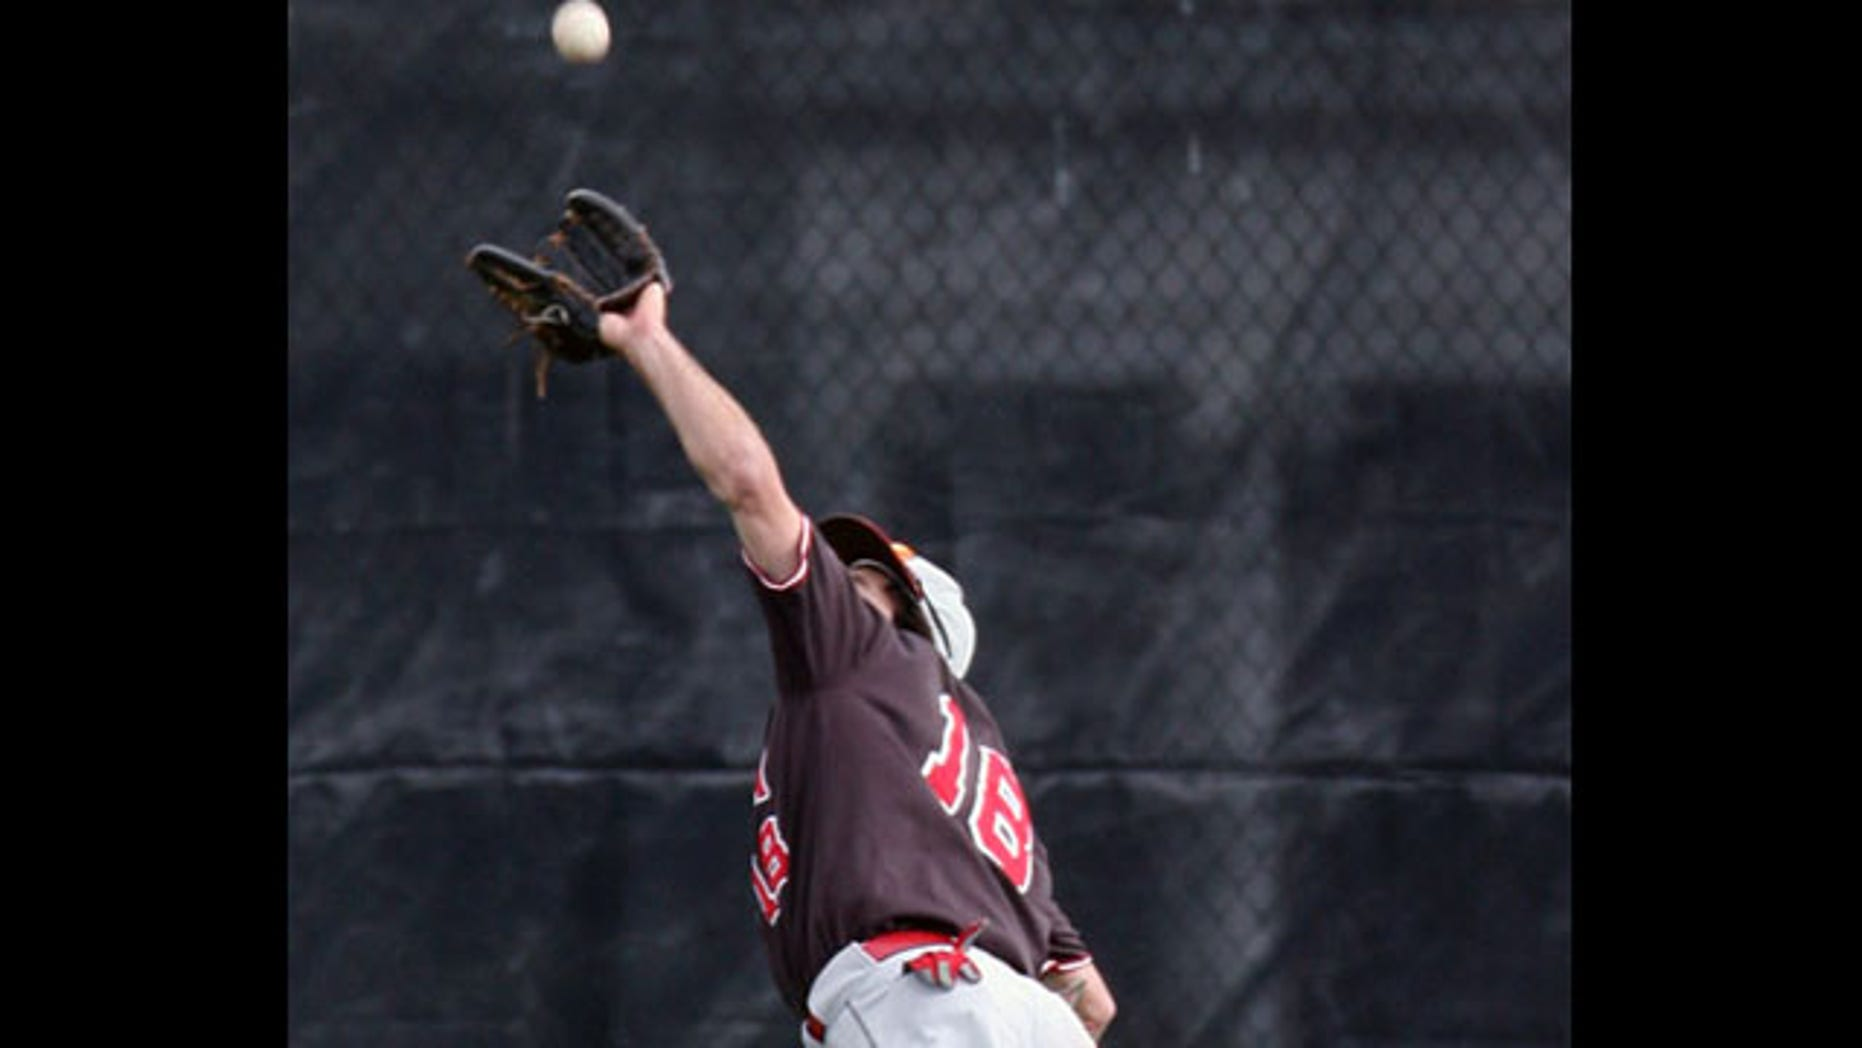 Researchers at Brown tested the three theories explaining how outfielders judge fly balls. It turns out to be a matter of optical acceleration cancellation.